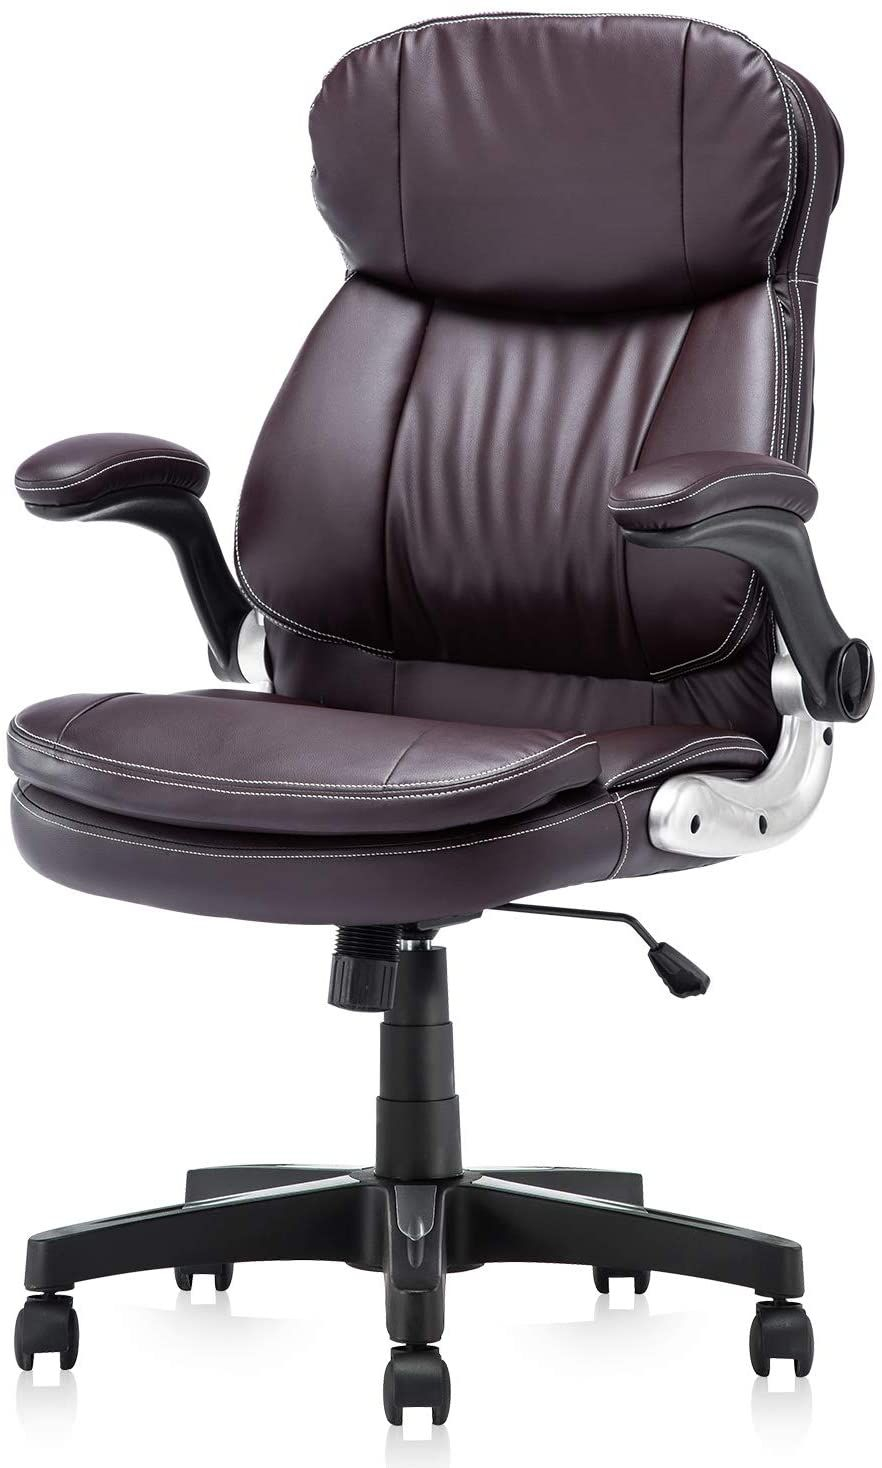 Kerms High Back Pu Leather Executive Office Chair Adjustable Recline Locking Flip Up Arms Comp In 2020 Office Chair Executive Office Chairs Brown Leather Office Chair